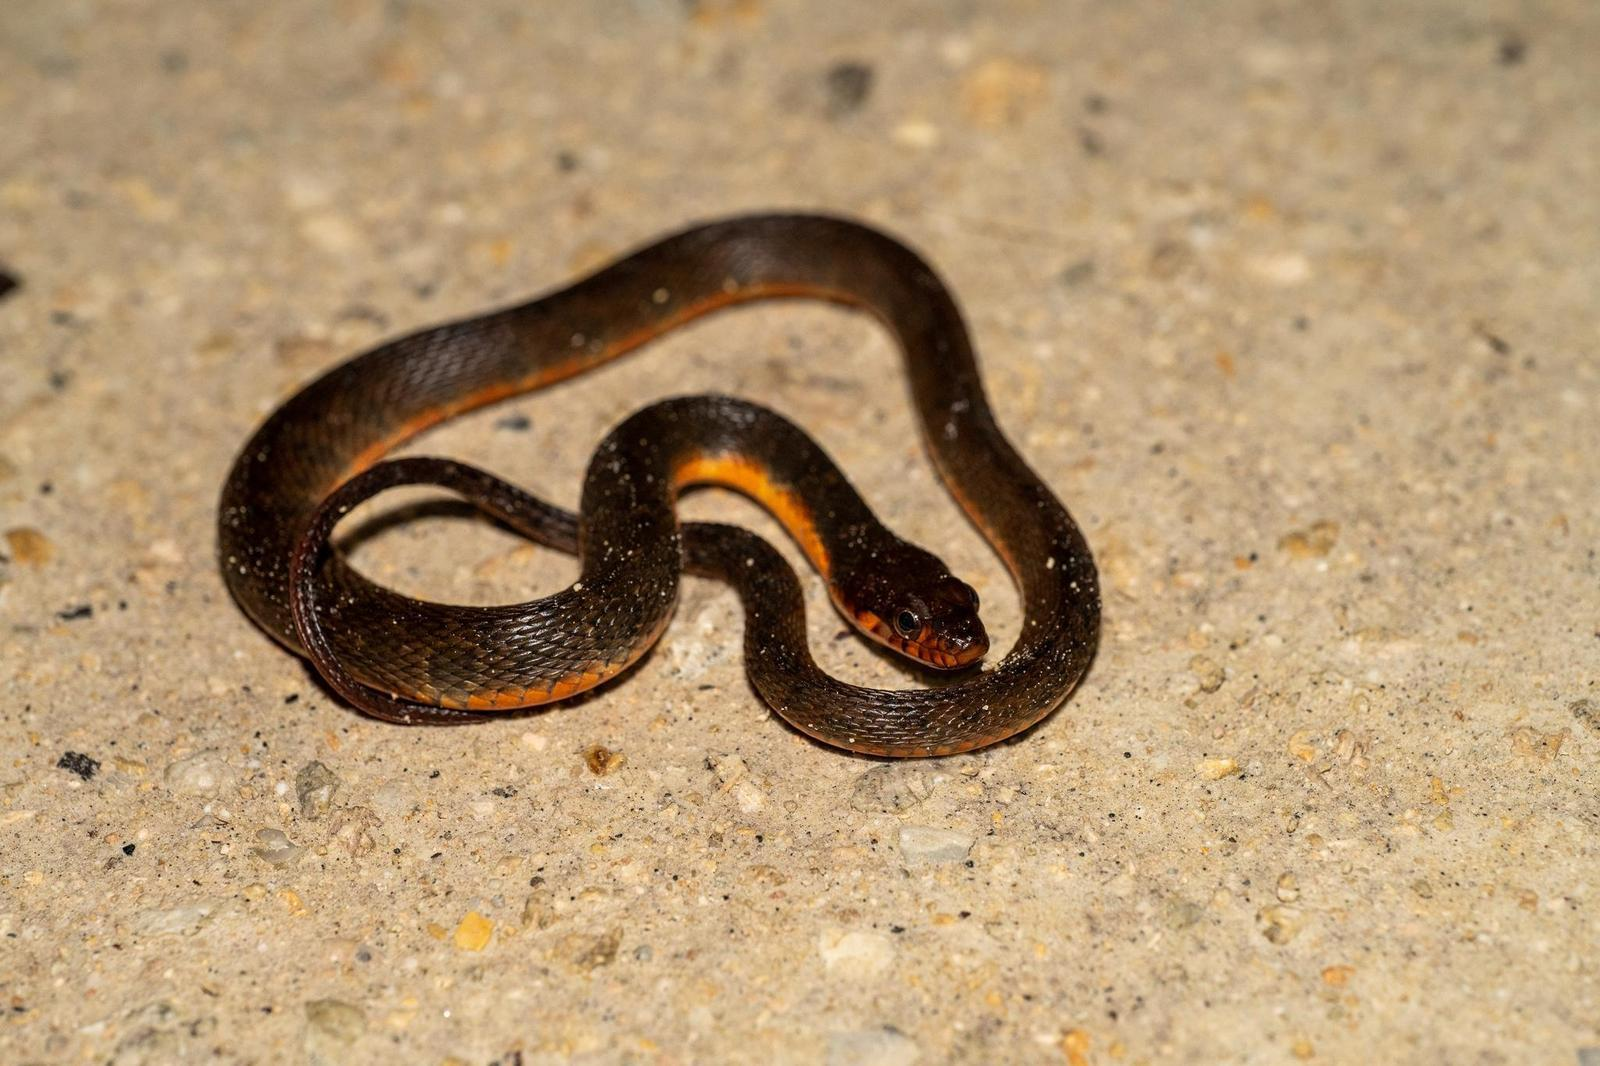 Plain-bellied Water Snake Photo by Jacob Zadik